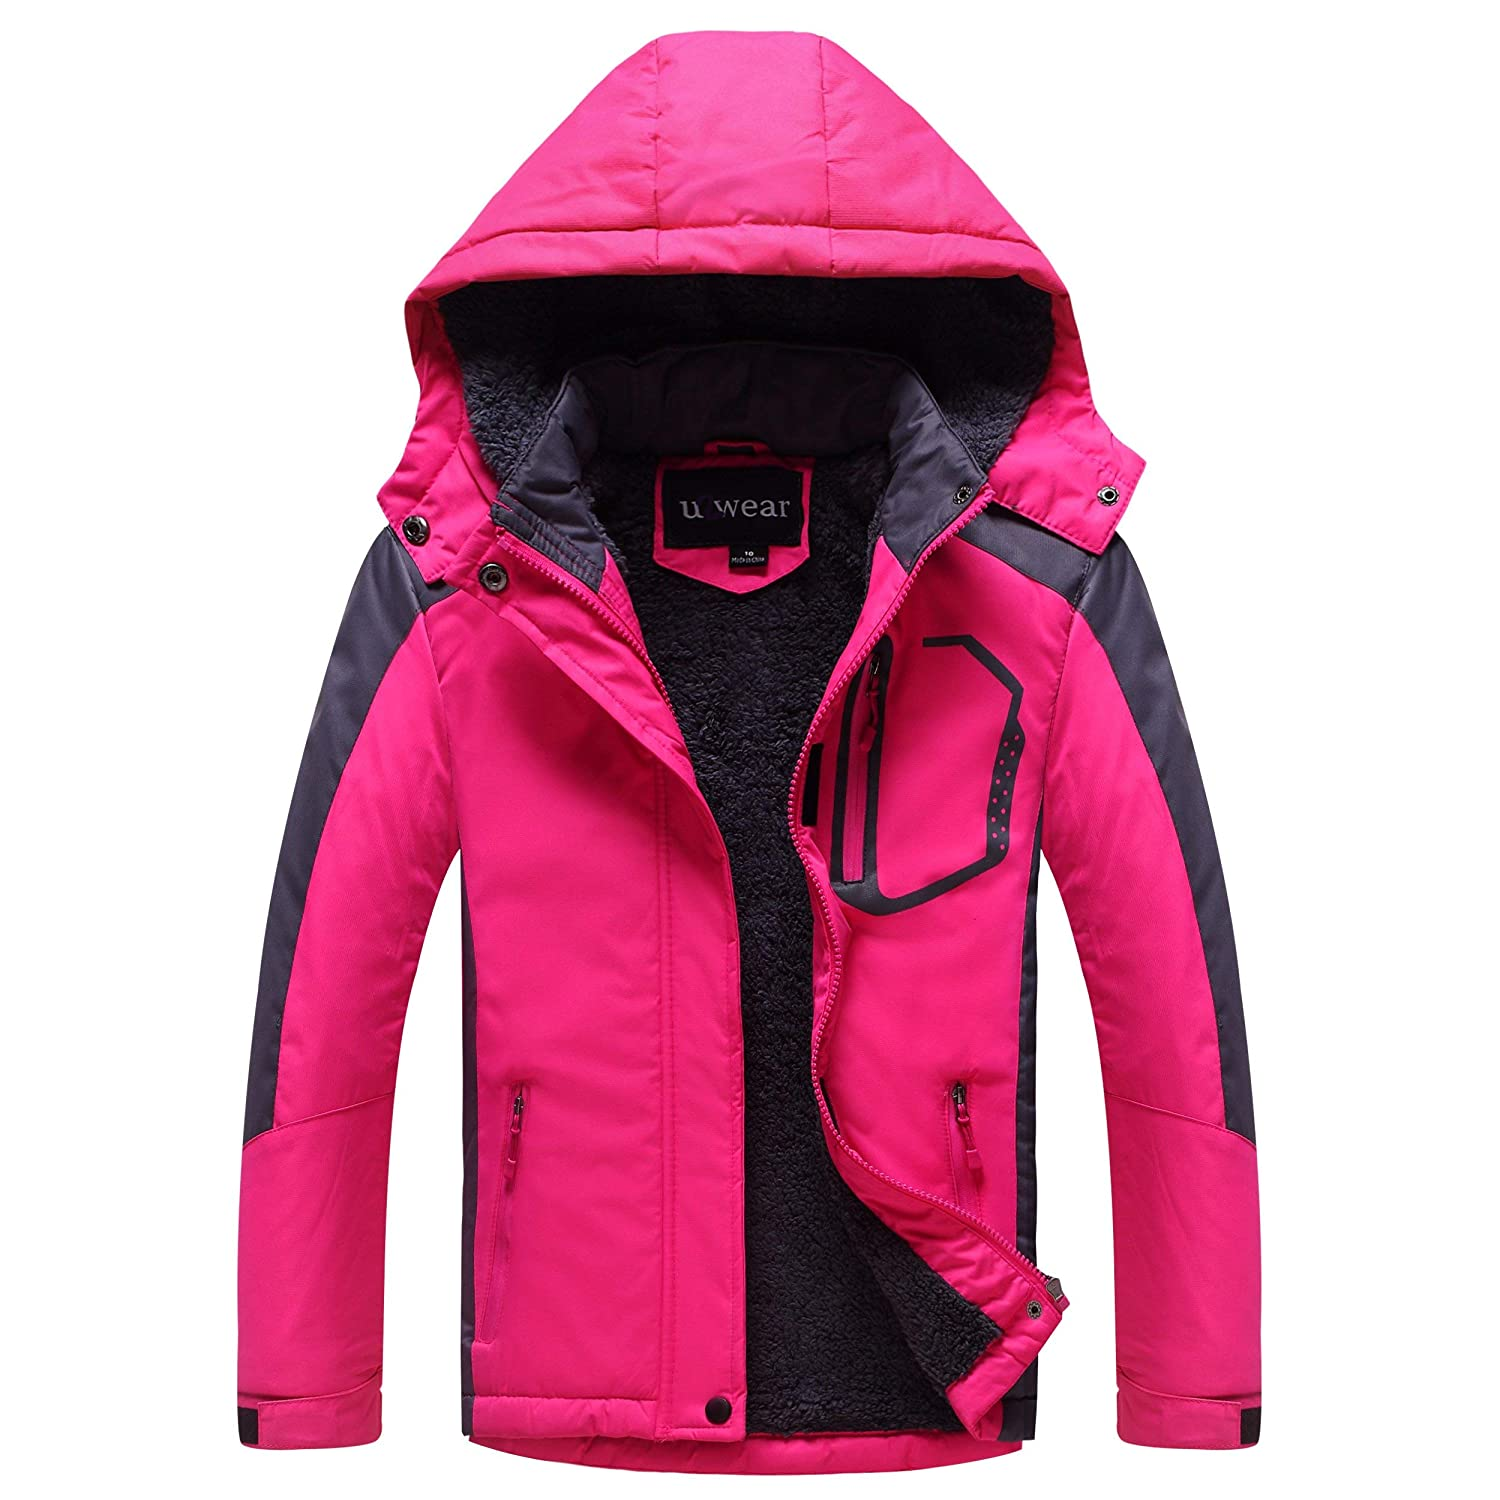 U2Wear Girls Softshell Jacket with Faux Fur Lining